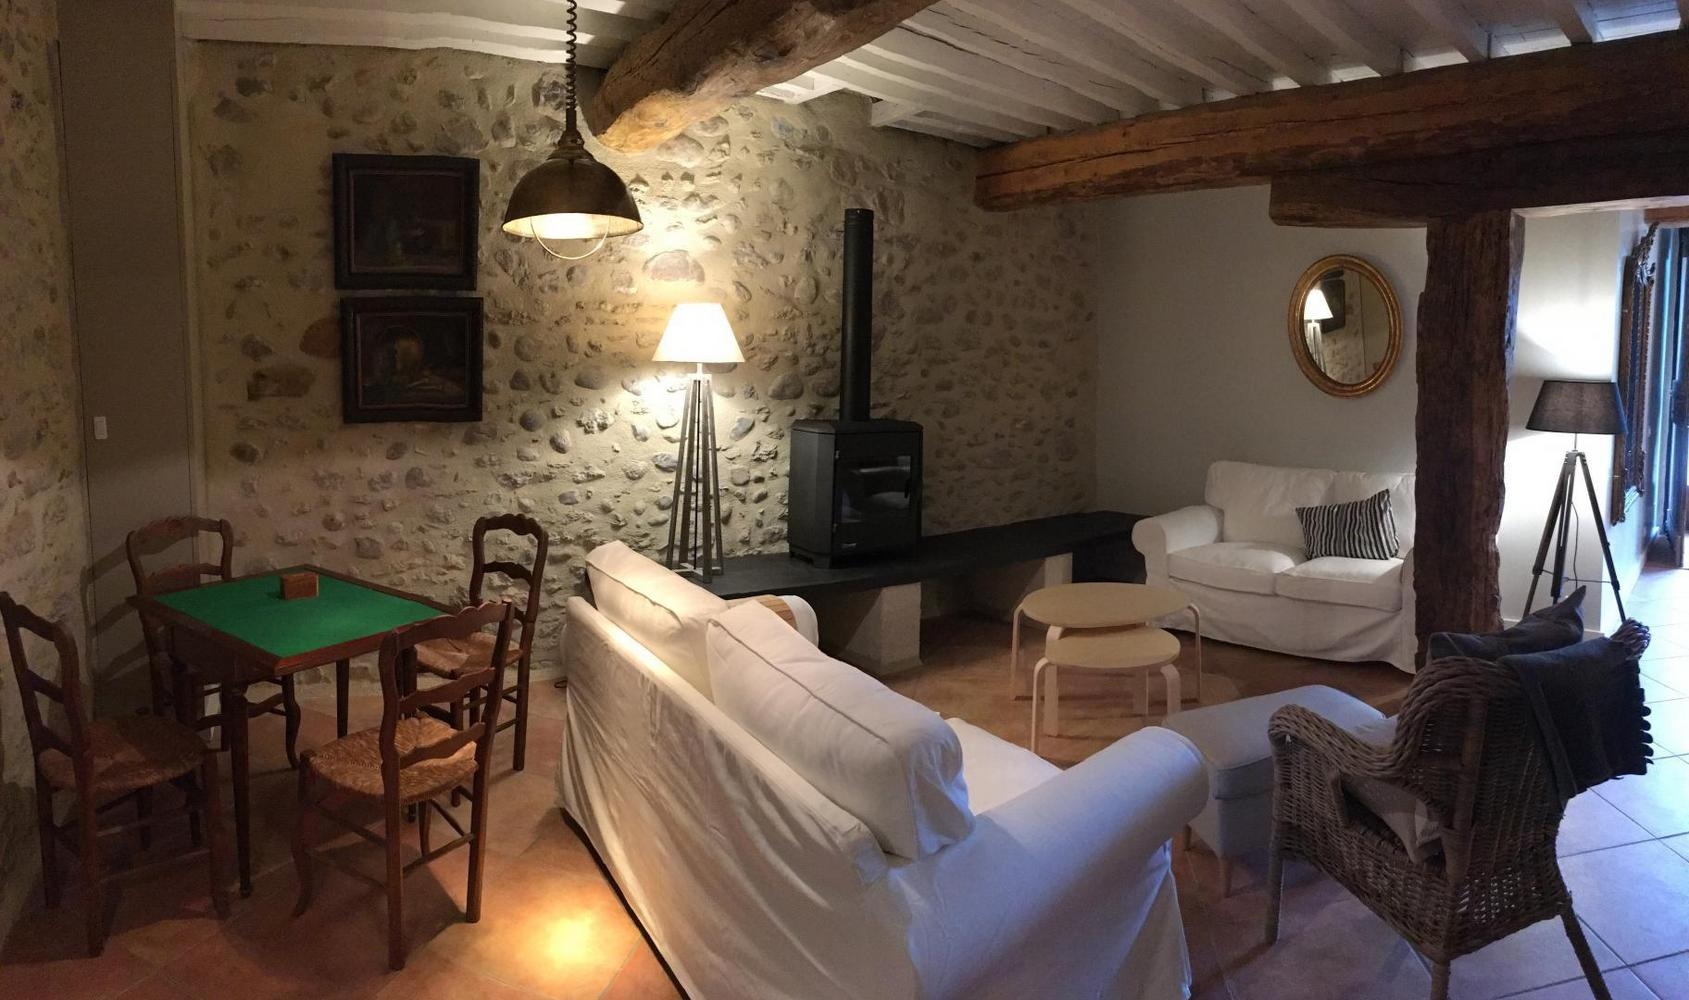 Chambres d'hotes d'Ambroisie, Aude - photo #16